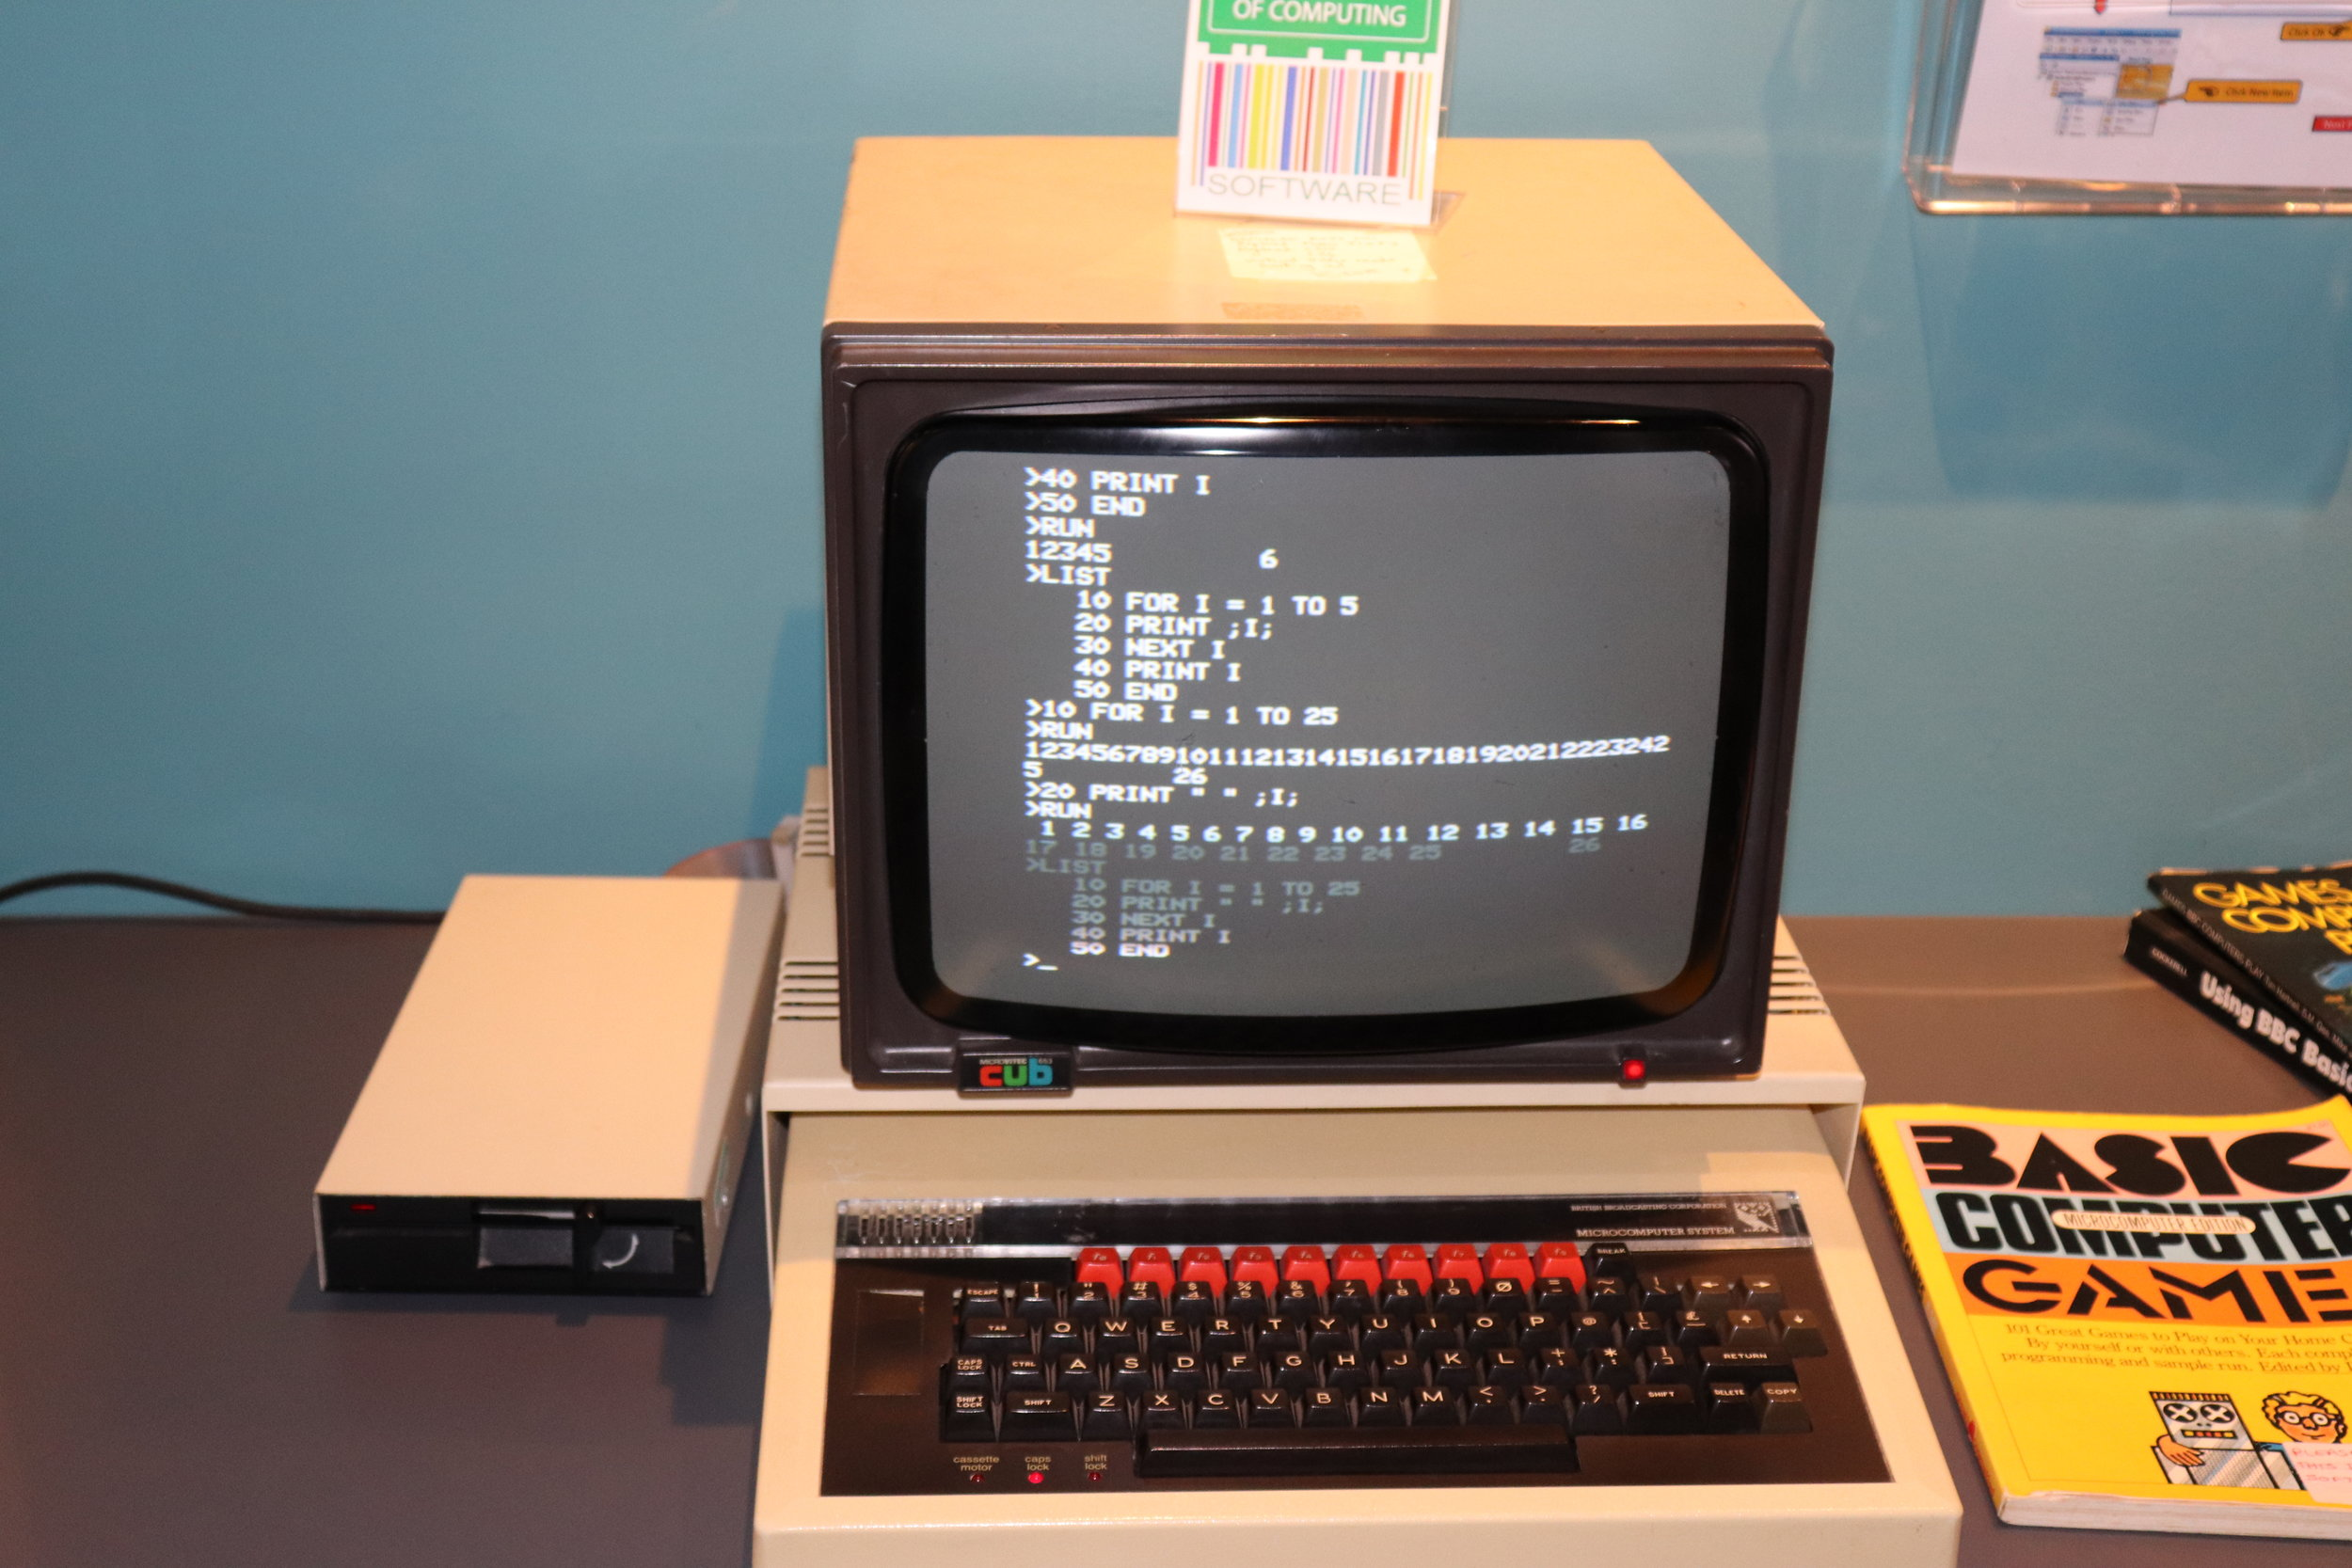 The BBC Micro sent a shiver down my spine. I heard so much about how this machine did so much for computer literacy in schools - I never got it.